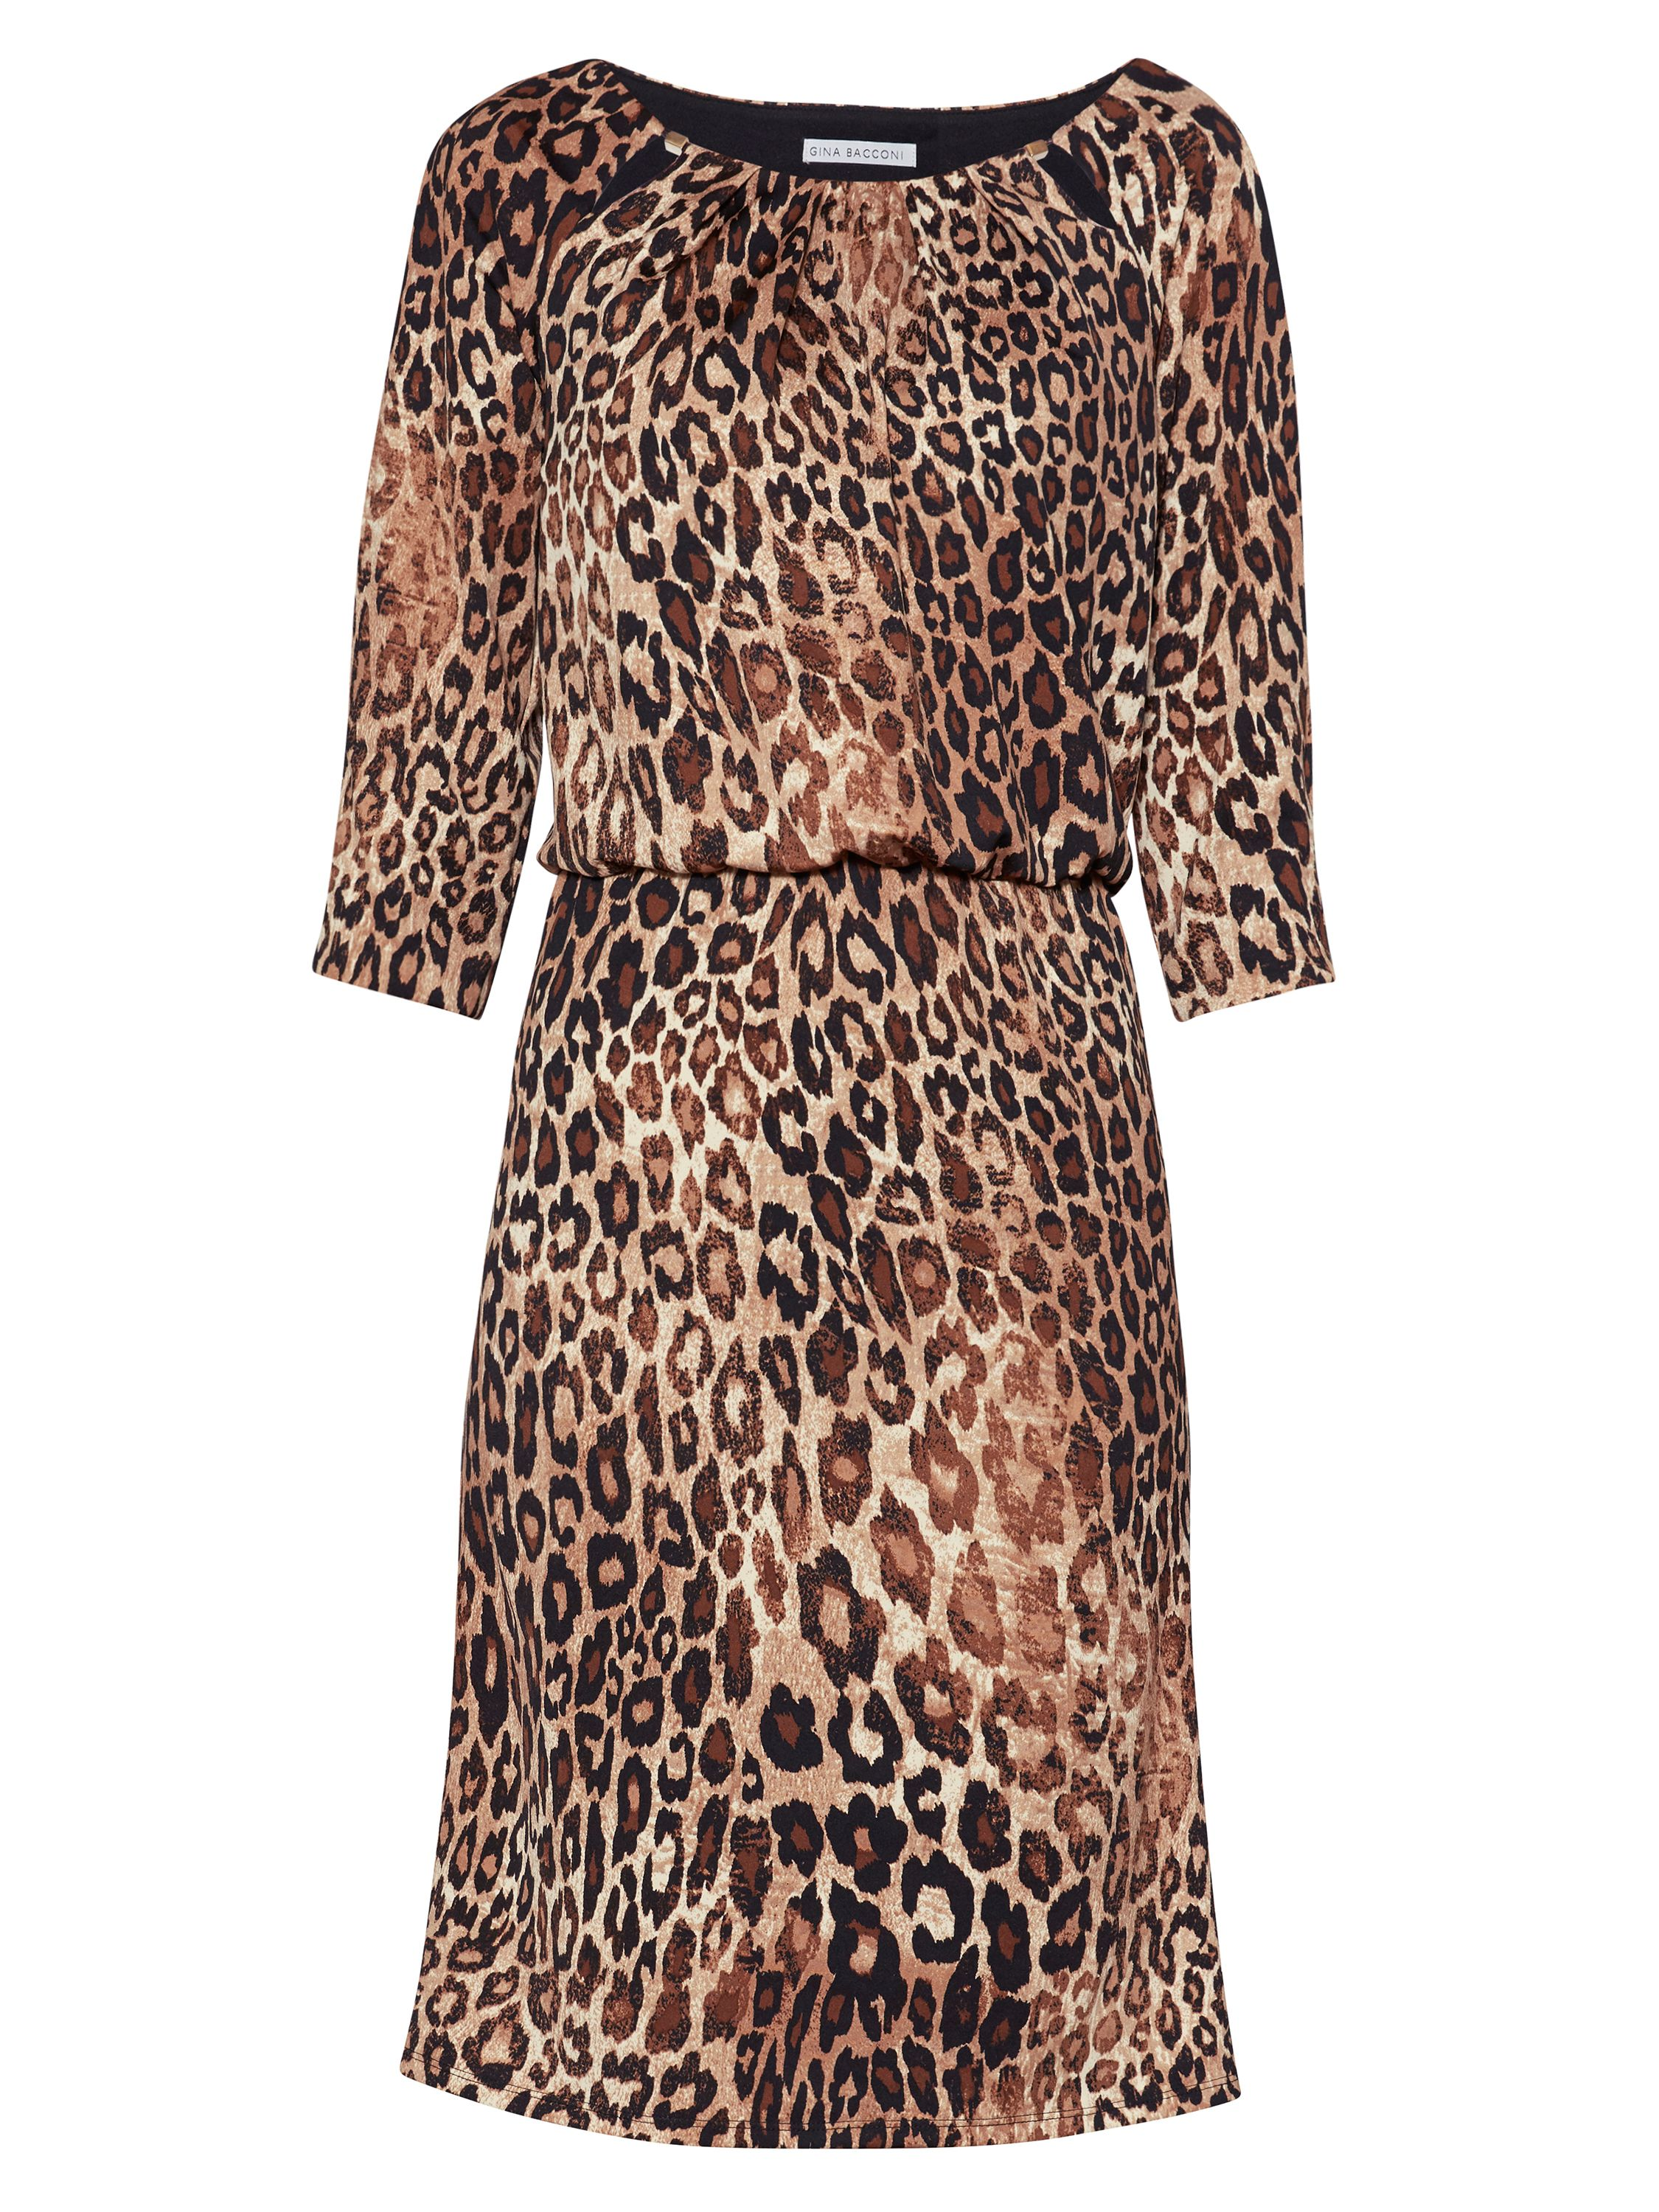 Gina Bacconi Ines Keyhole Print Dress, Brown